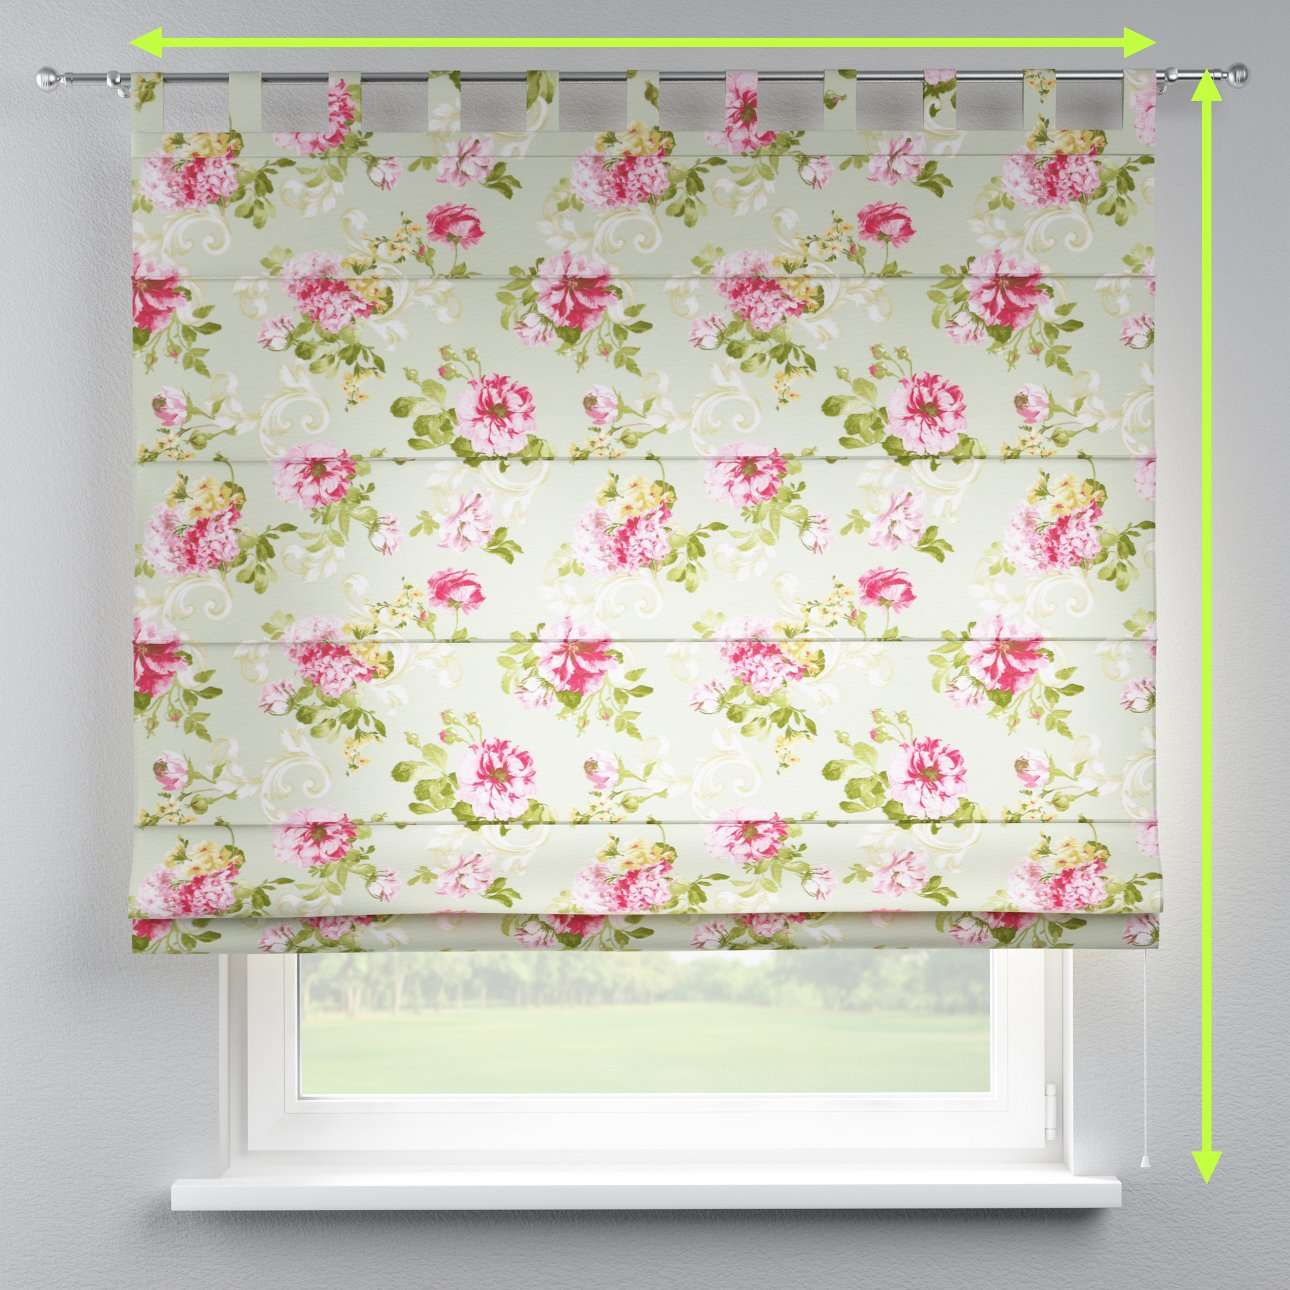 Verona tab top roman blind in collection Flowers, fabric: 311-10